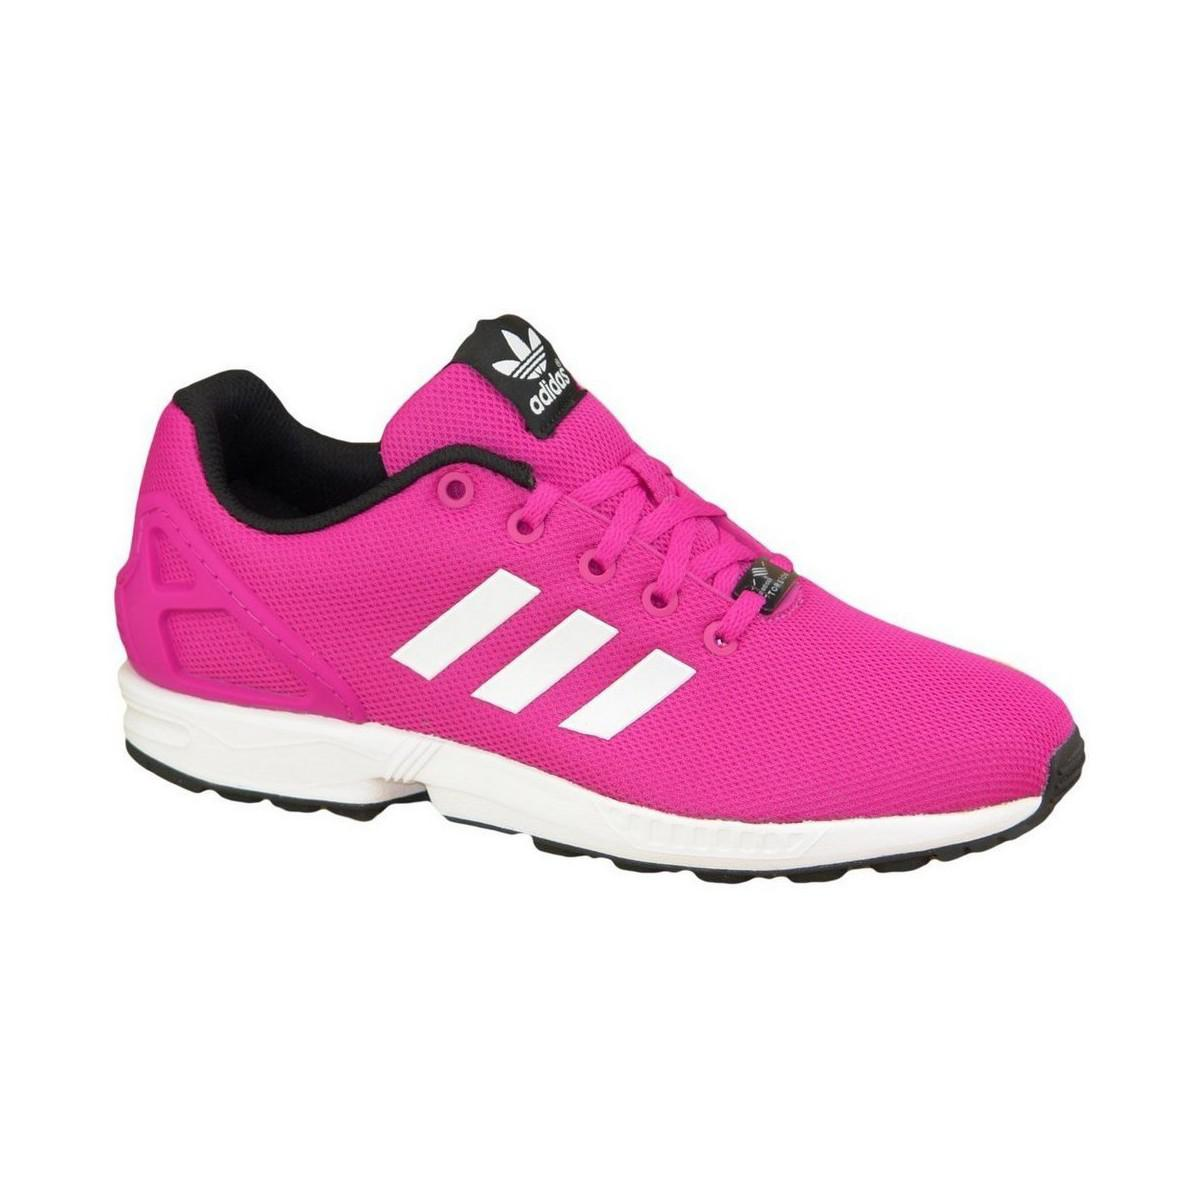 adidas Zx Flux Adv Smooth W Women's Shoes (trainers) In Pink